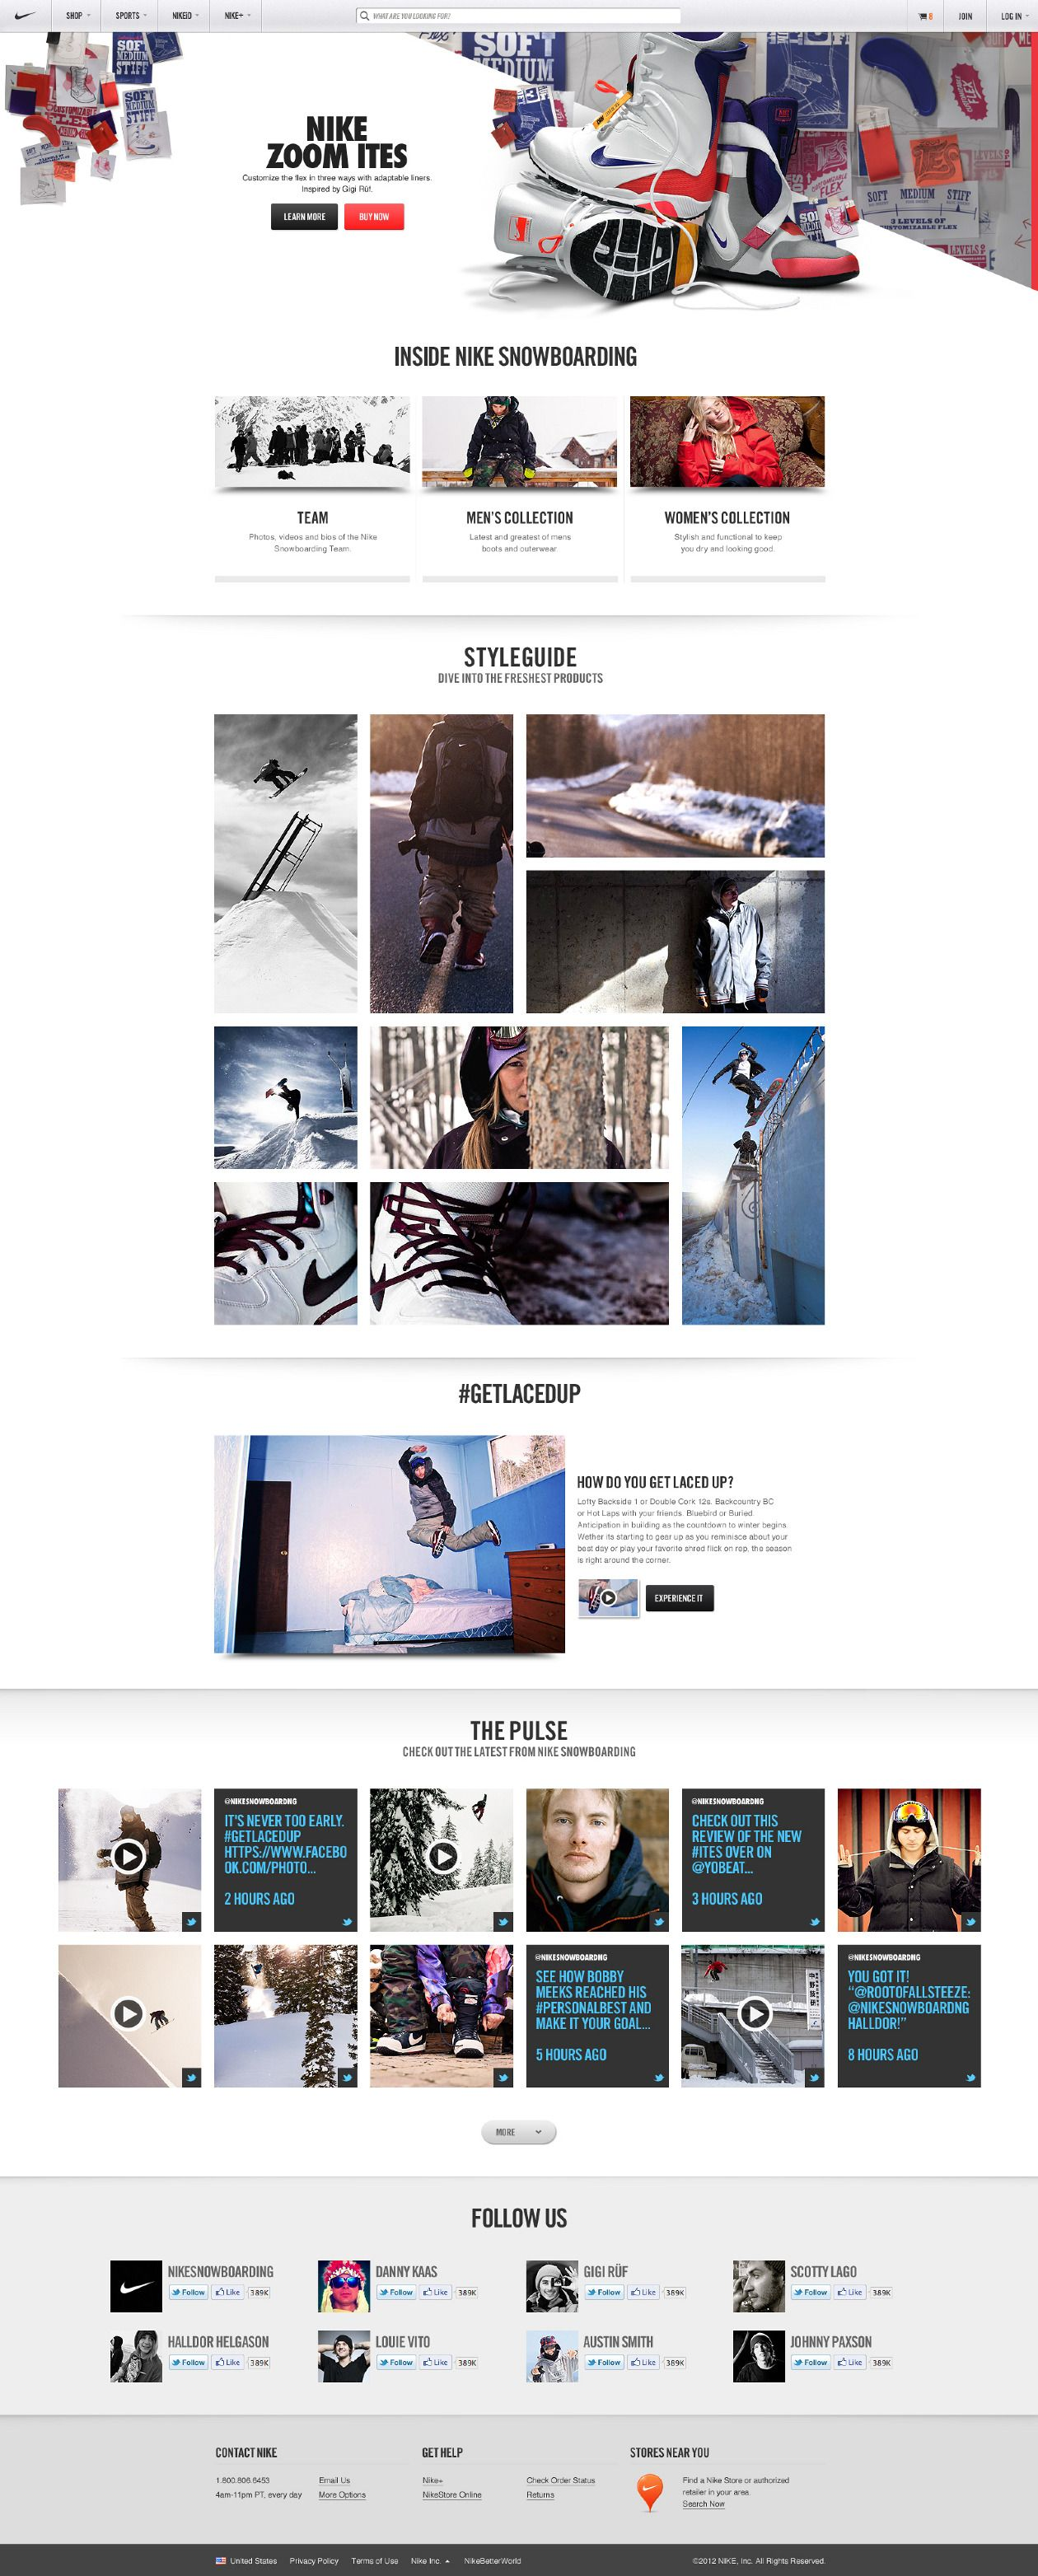 Nike Snowboarding - Hoshi Ludwig - Direction and Design